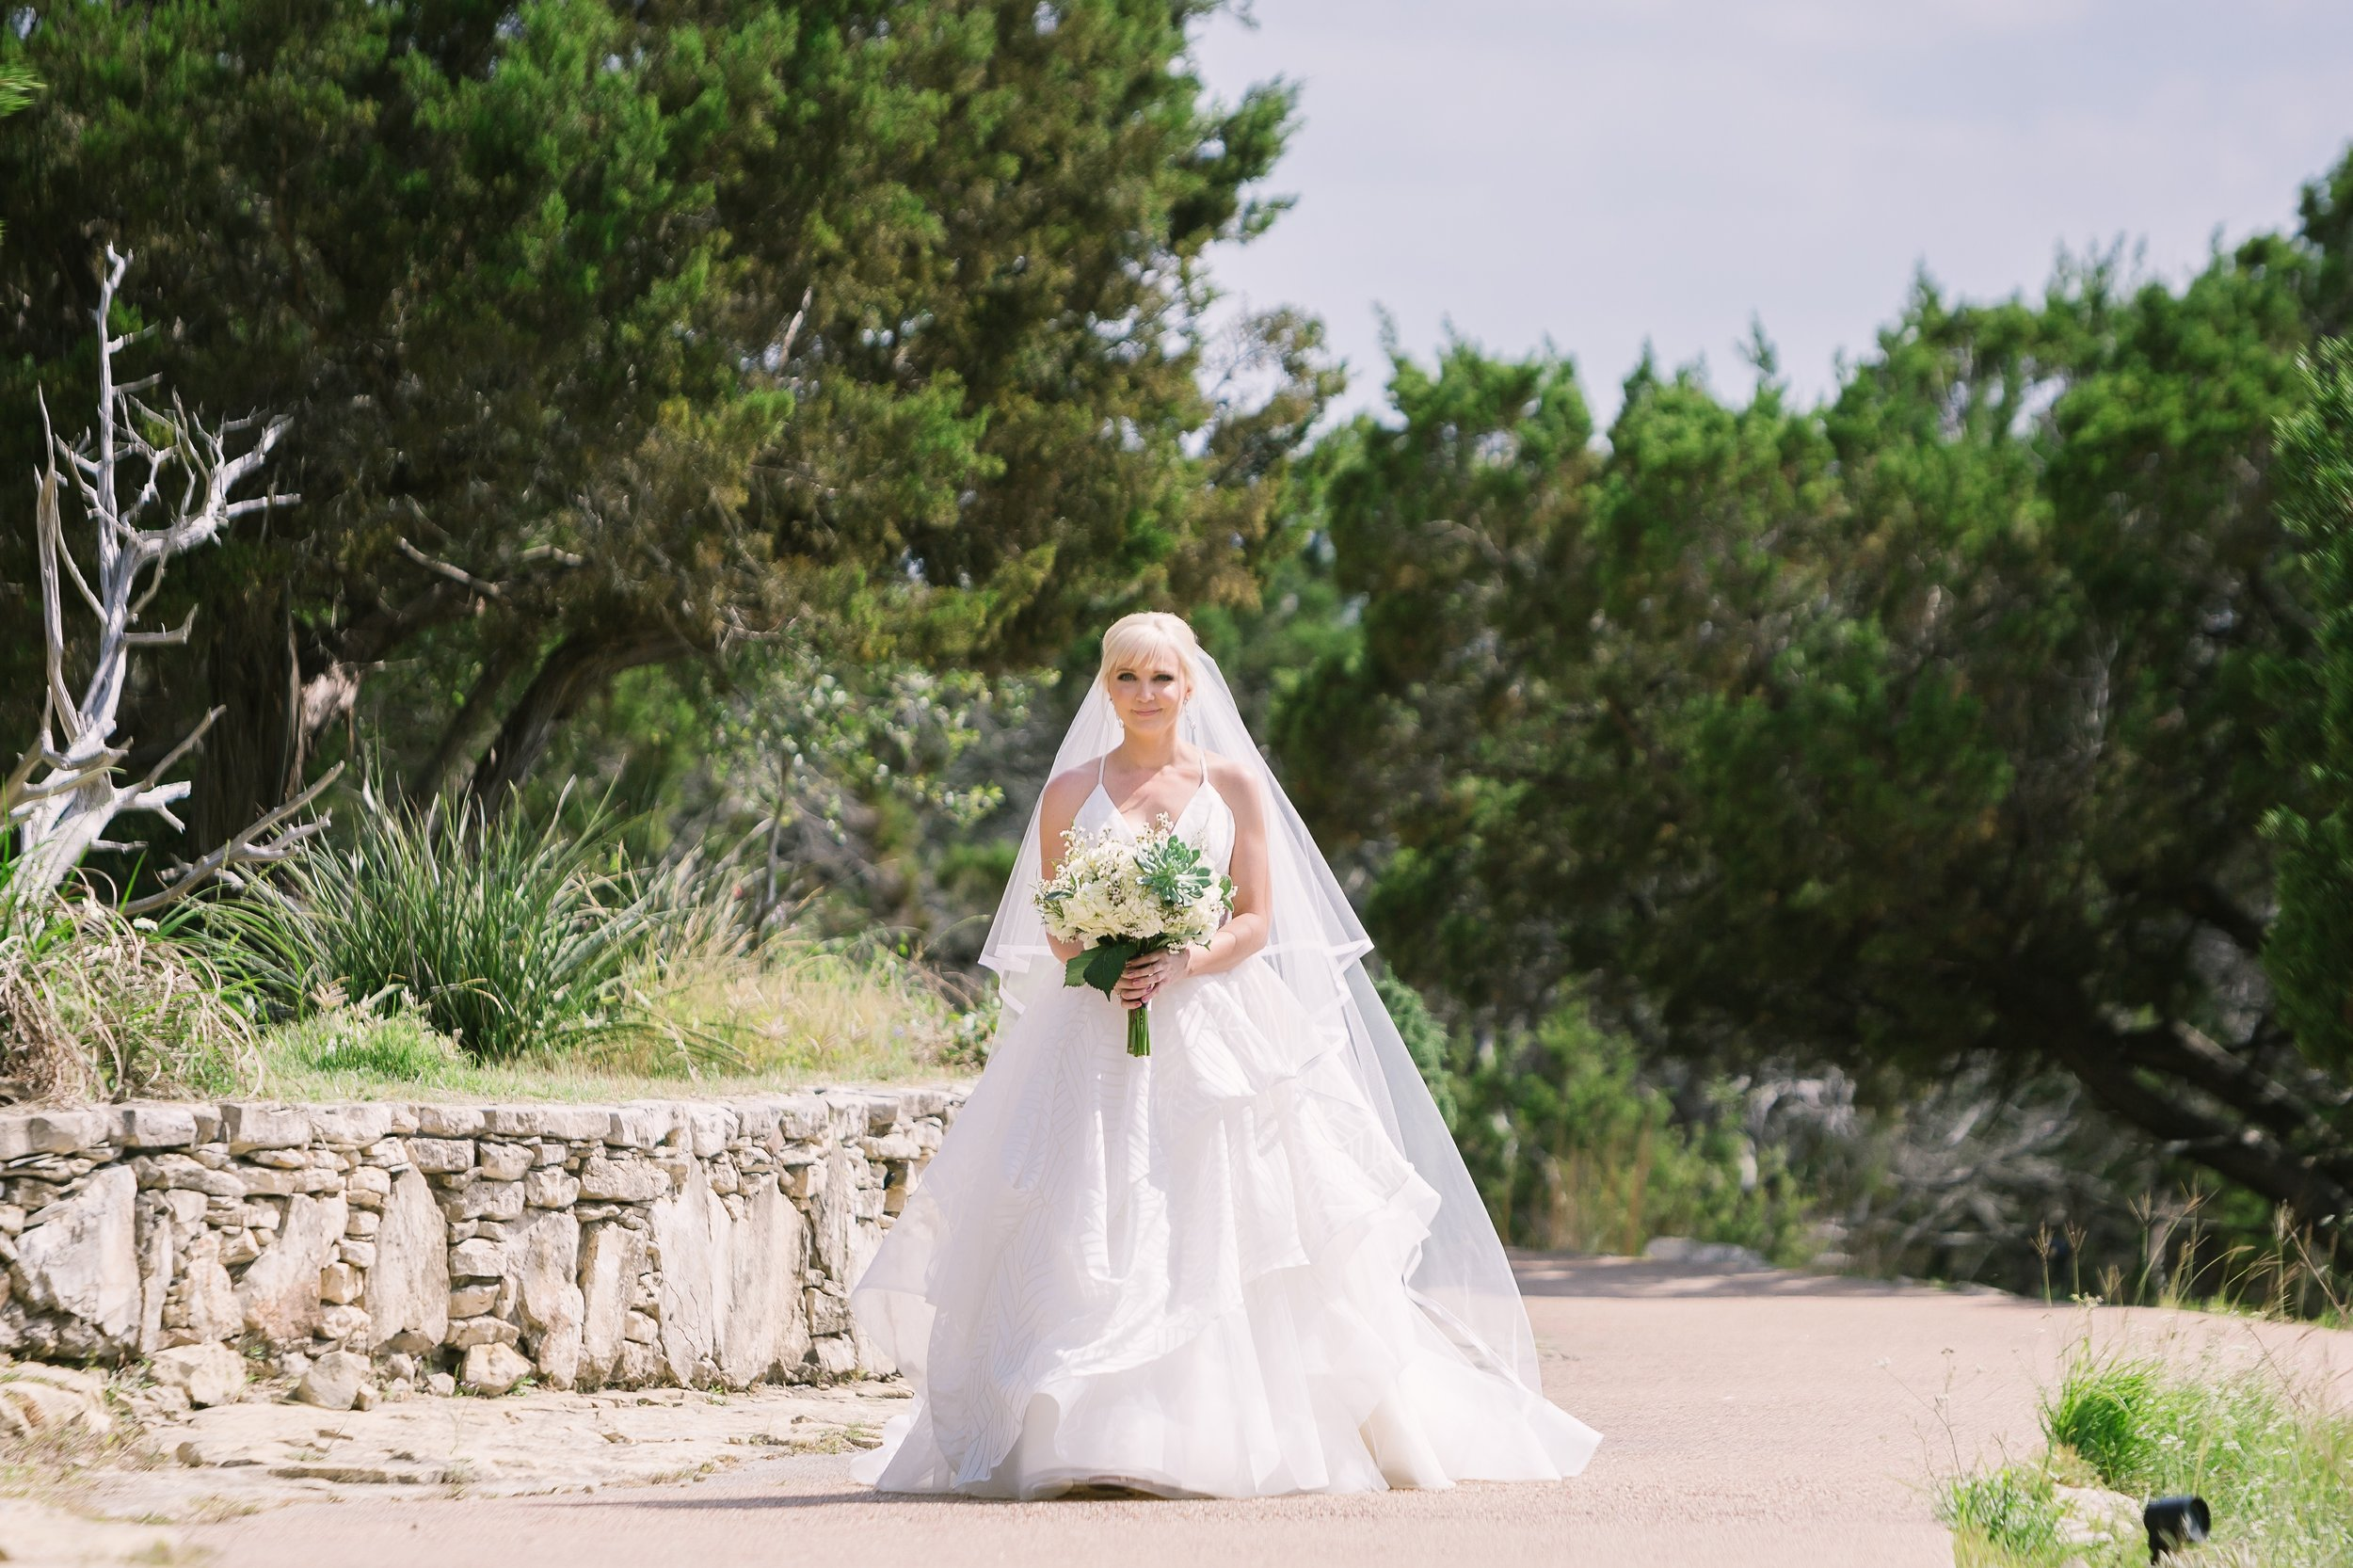 Bride's entrance | Hill Country Weddings at Chapel Dulcinea